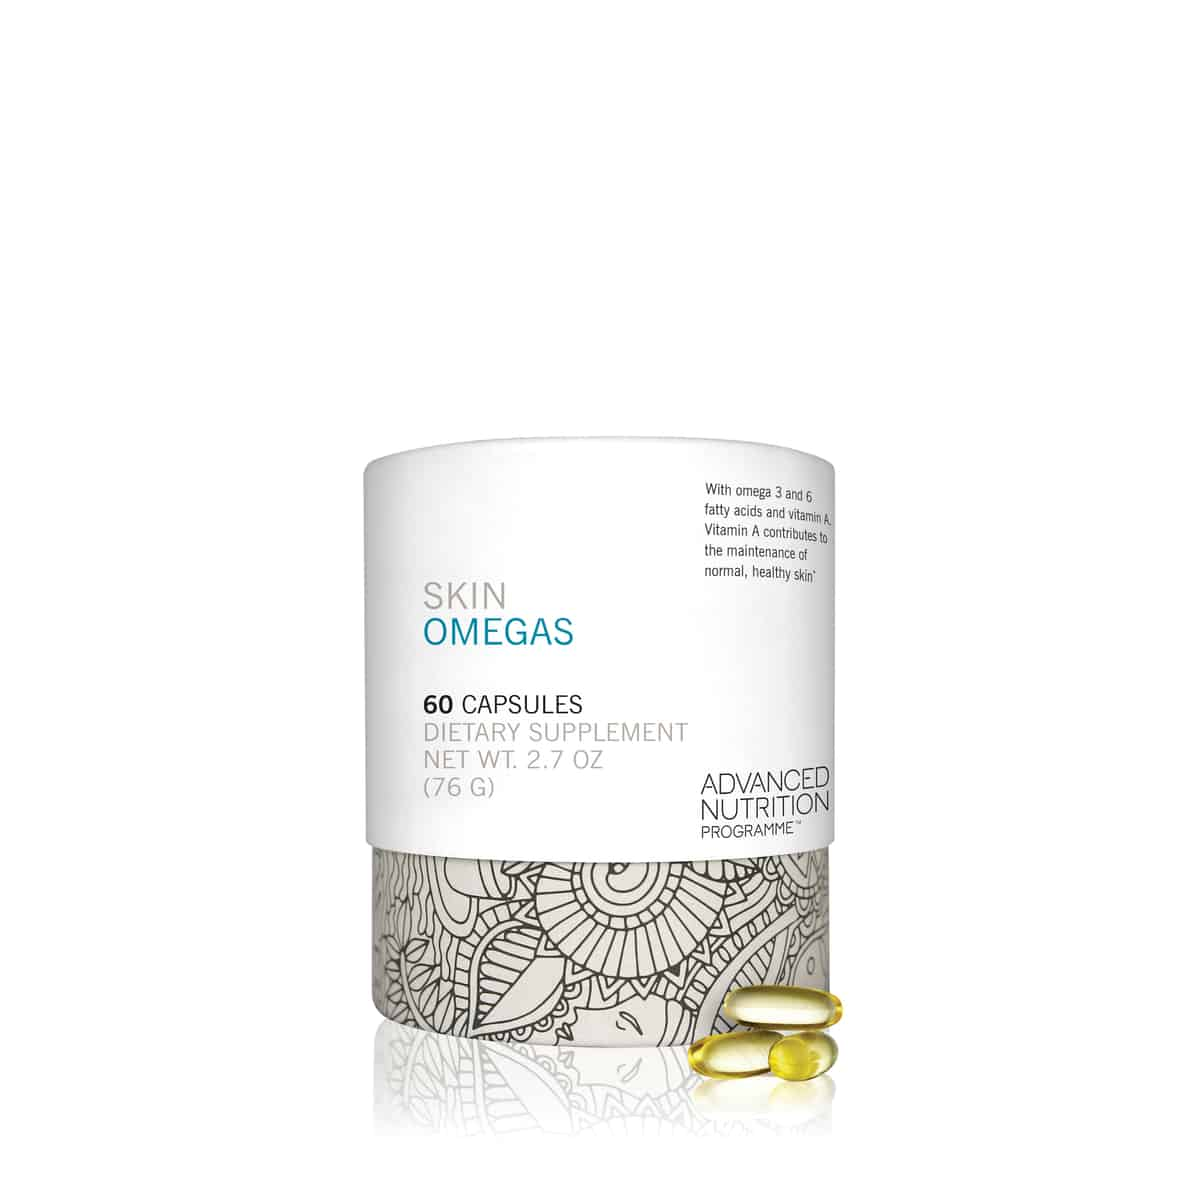 skin omegas skincare supplements